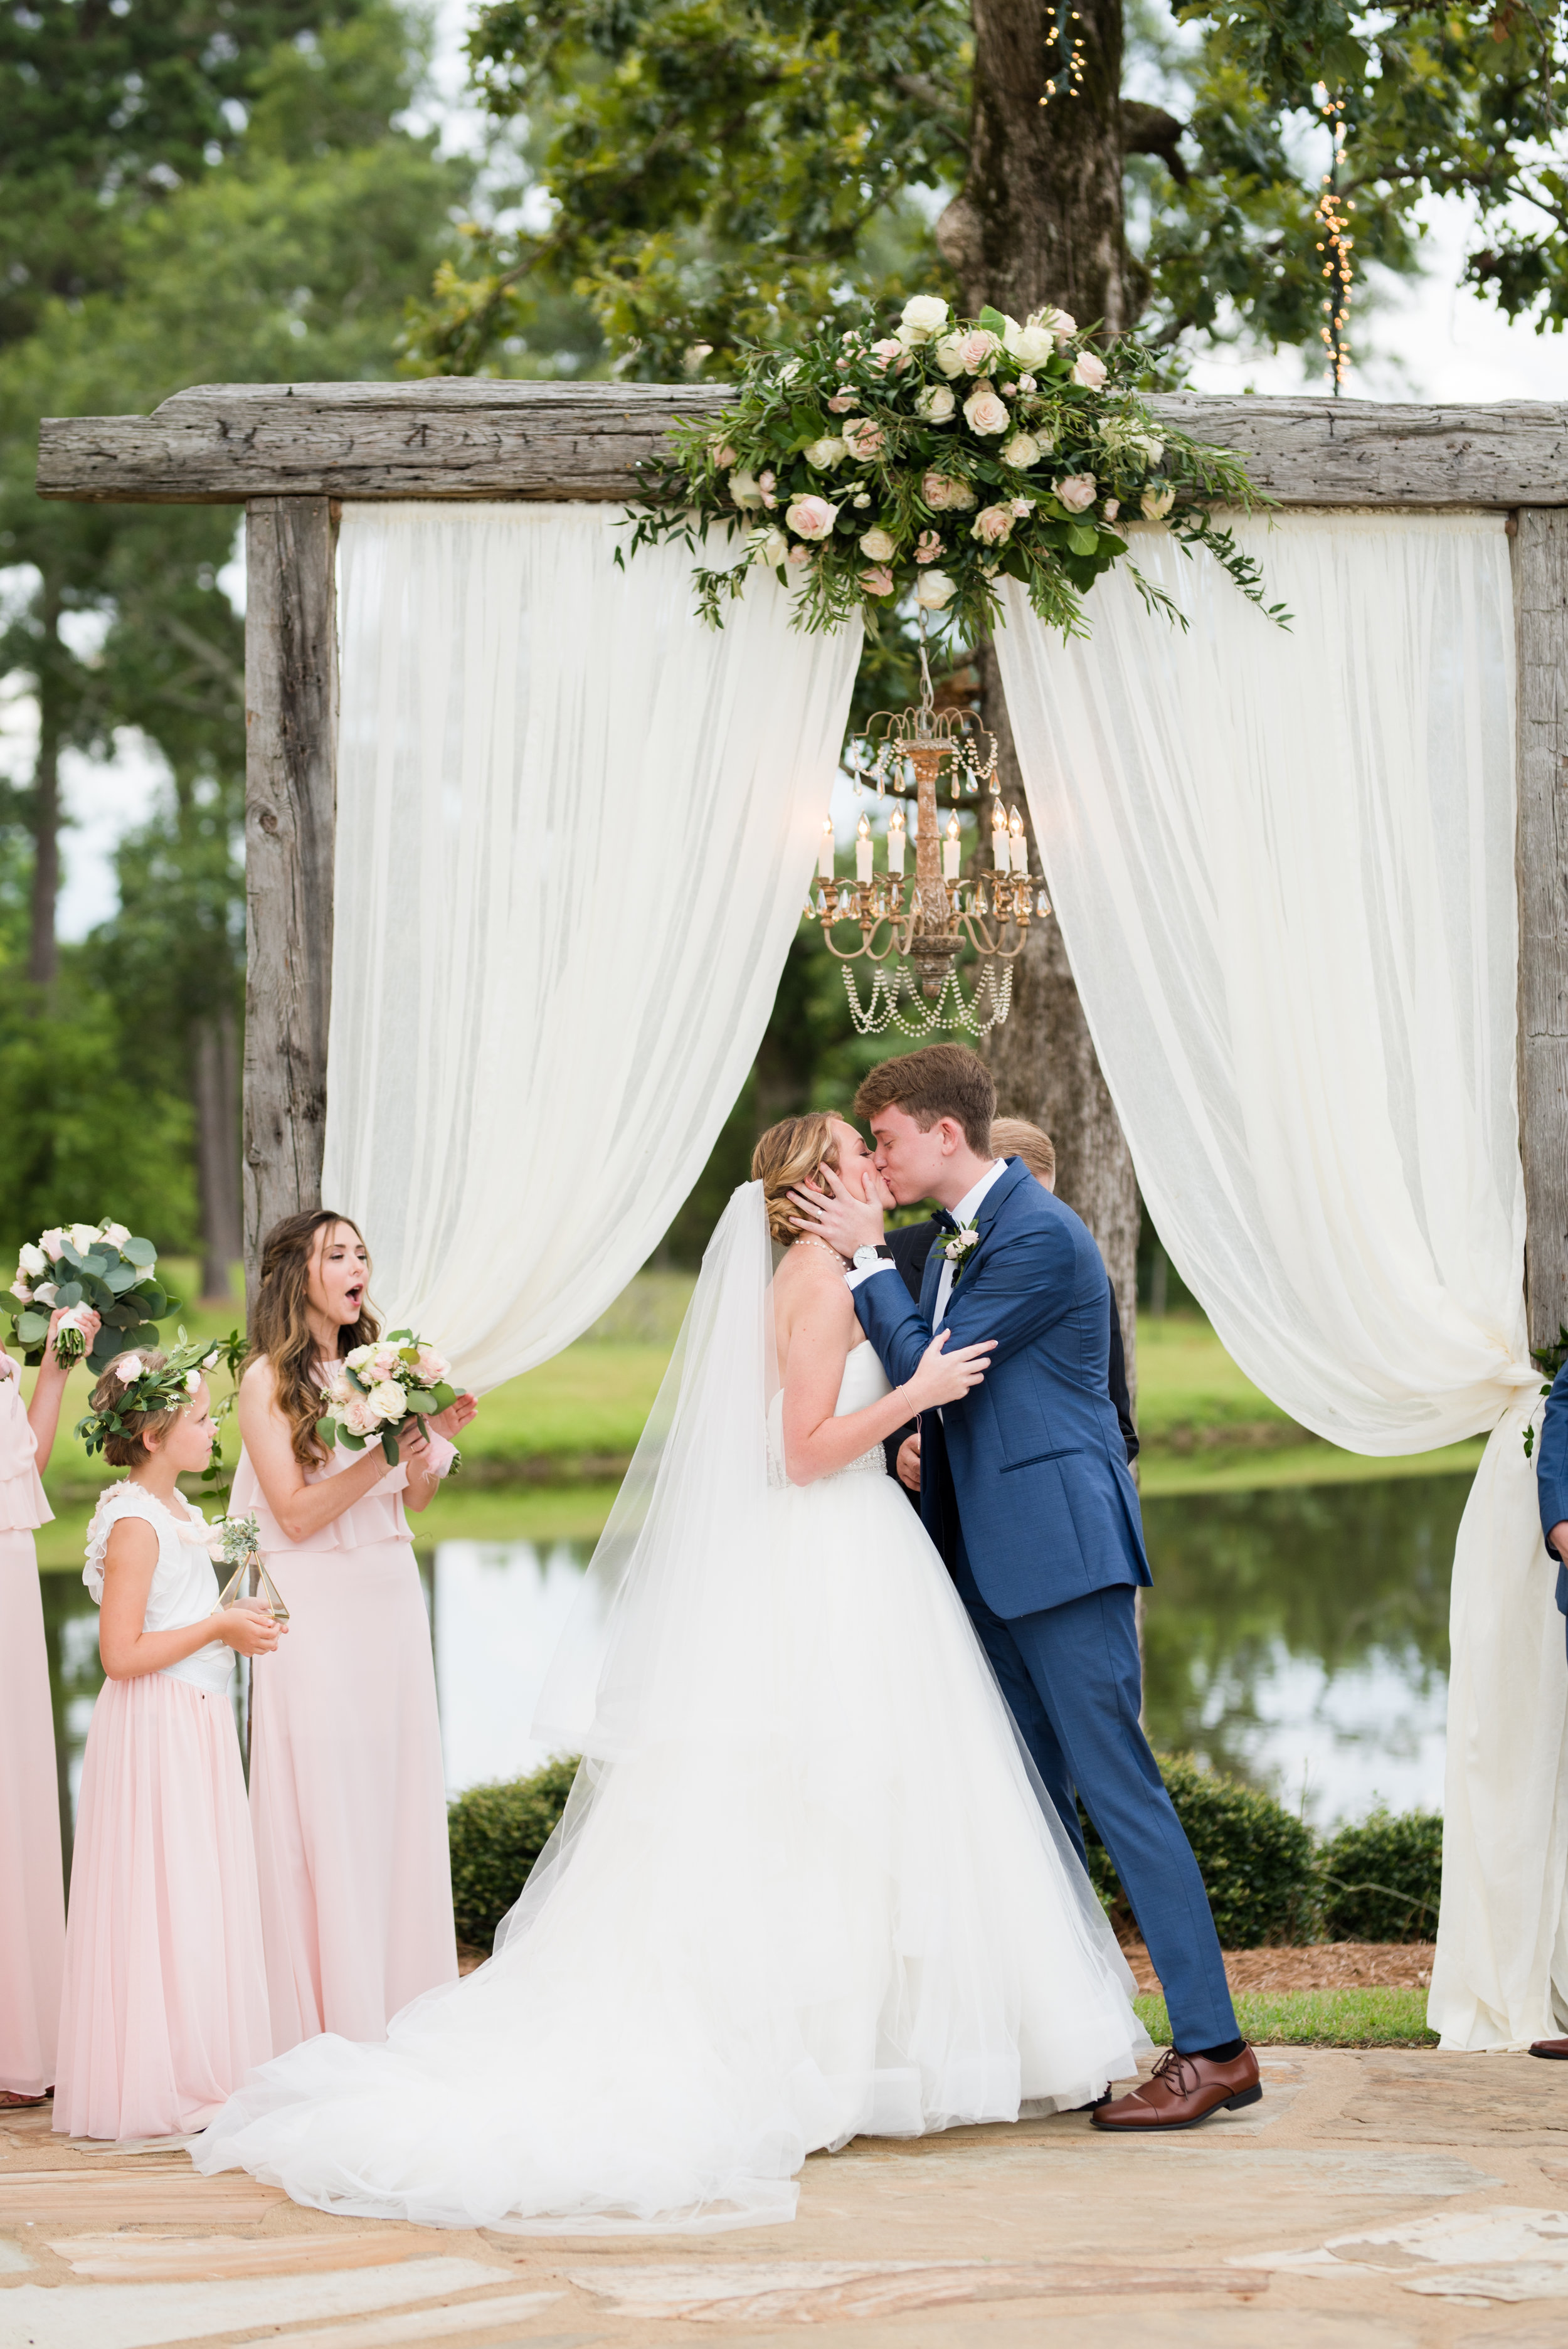 The Barn at Bridlewood wedding in Hattiesburg, Mississippi (MS) in June | Bride and Groom Wedding ceremony first kiss